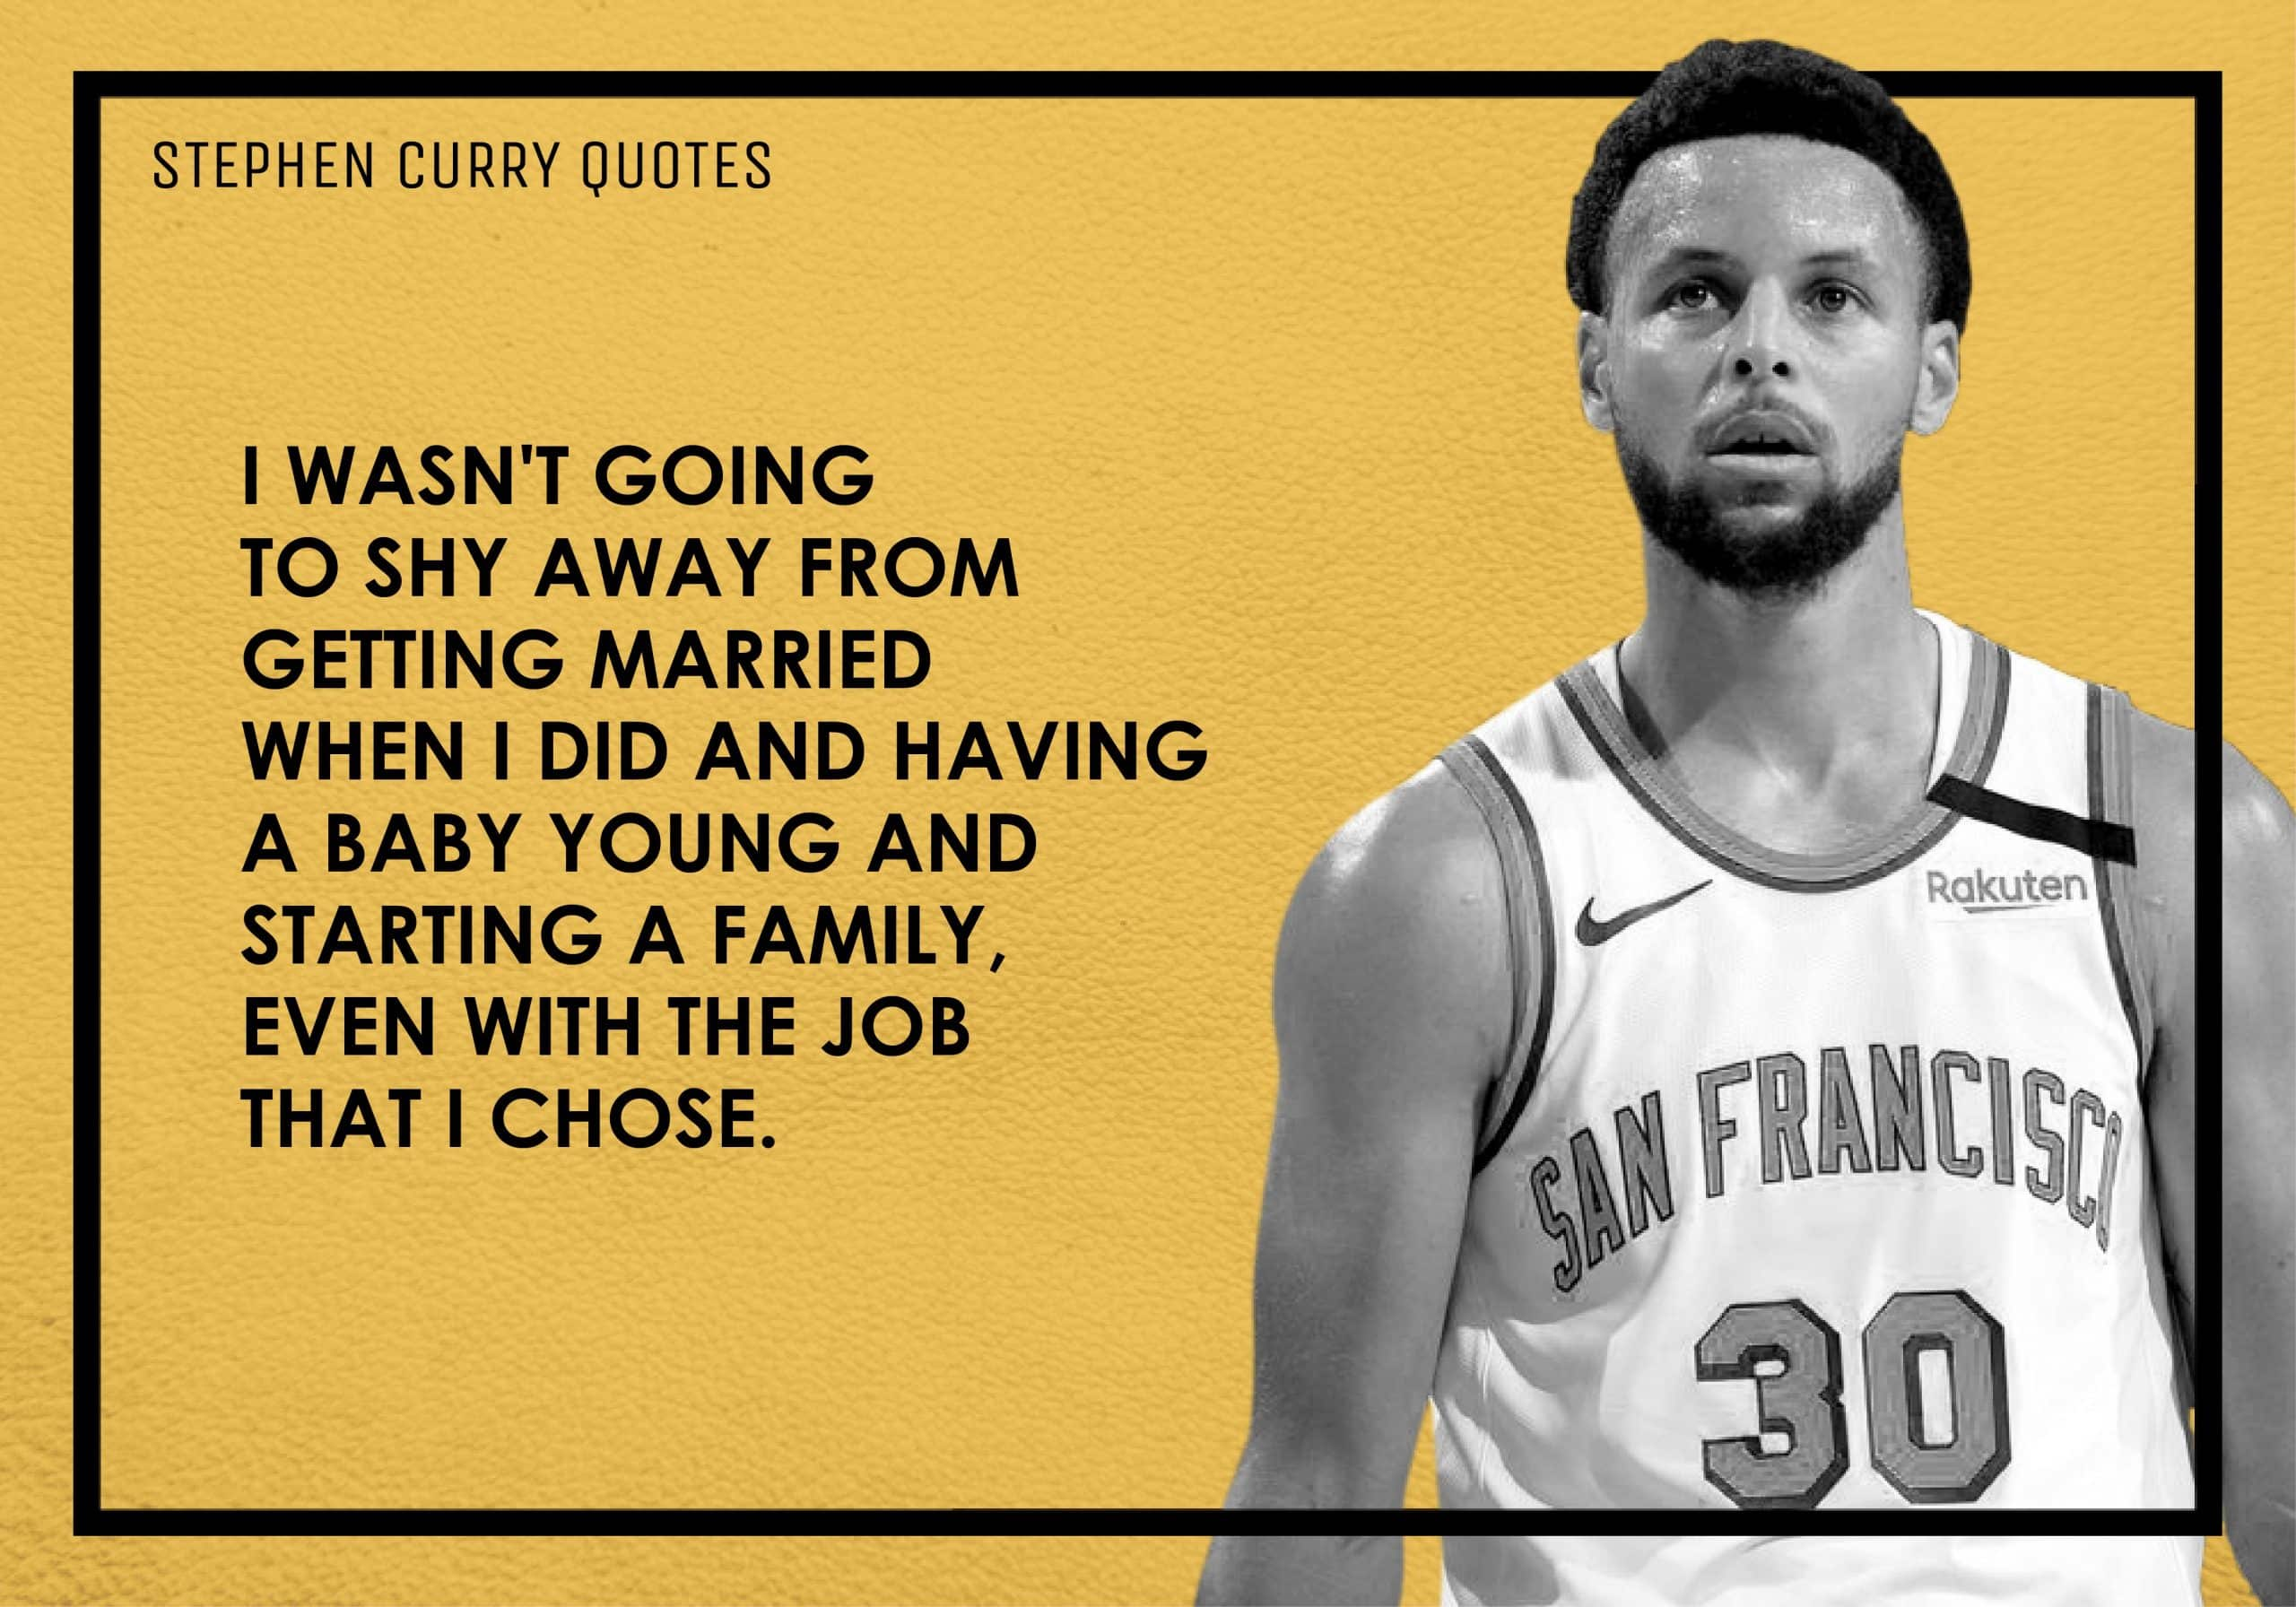 Stephen Curry Quotes (9)